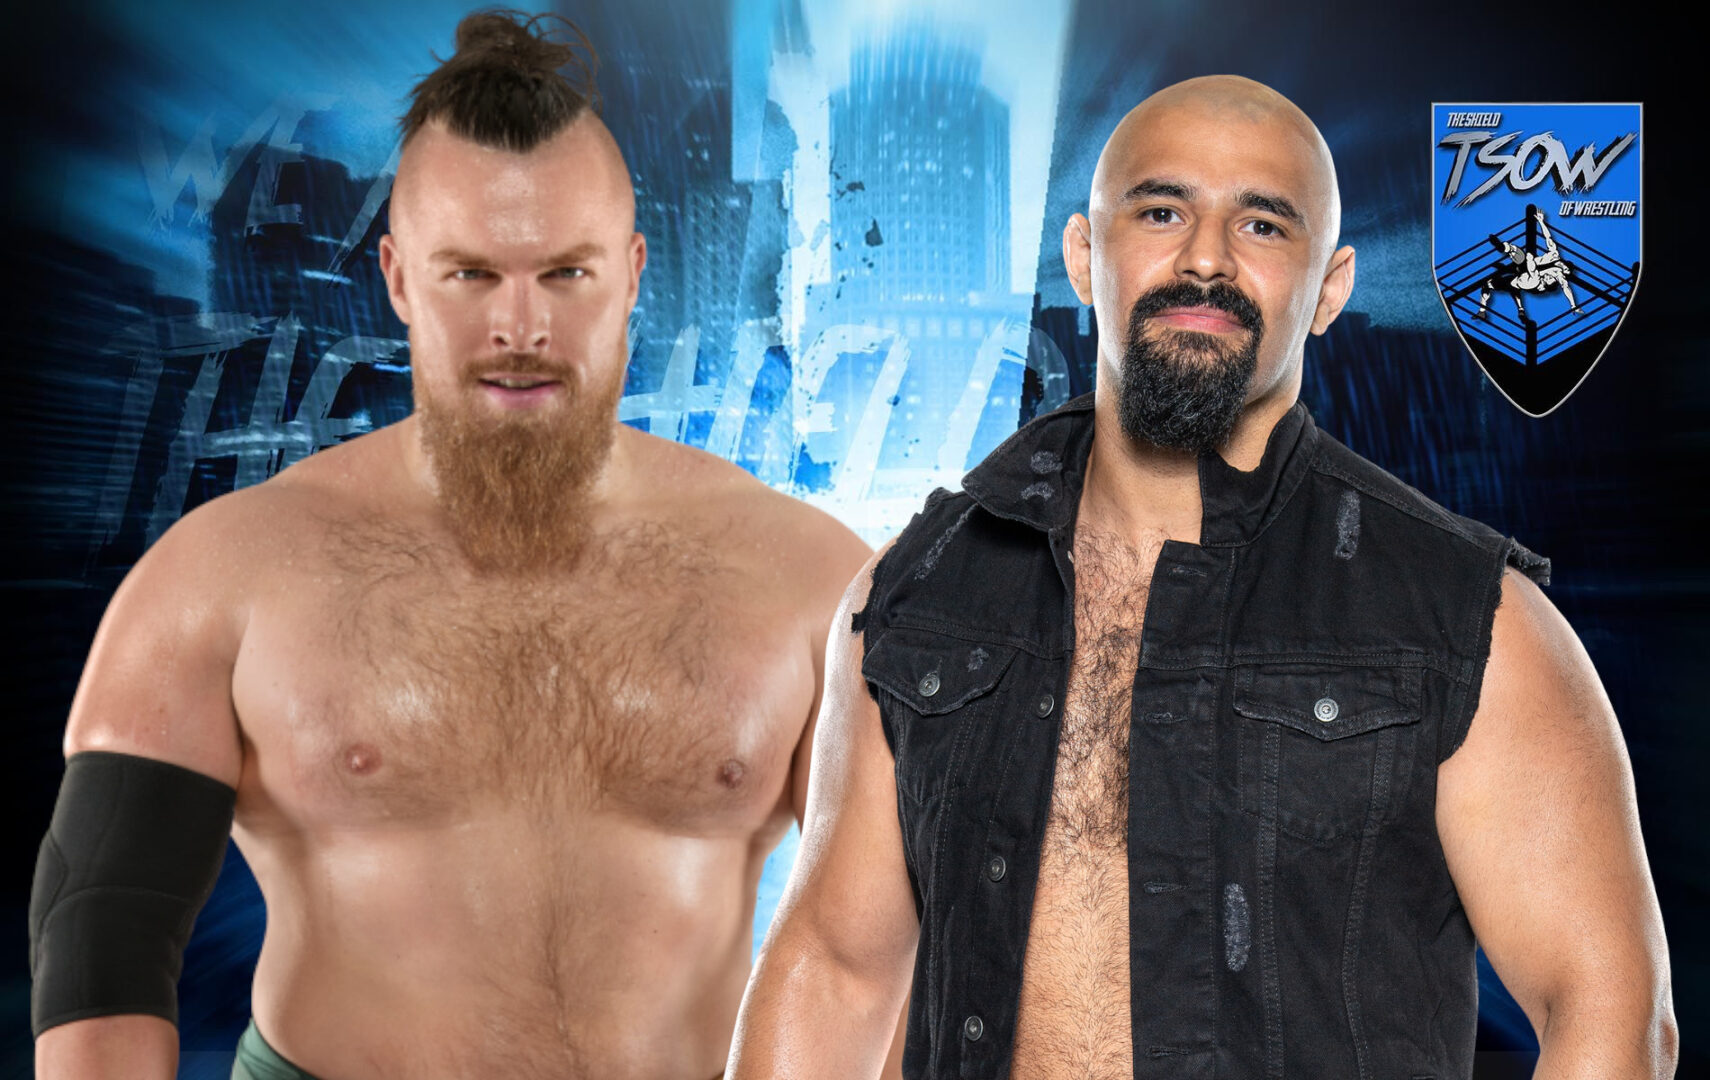 Rampage Brown ha vinto nel Knockouts or Submission Match